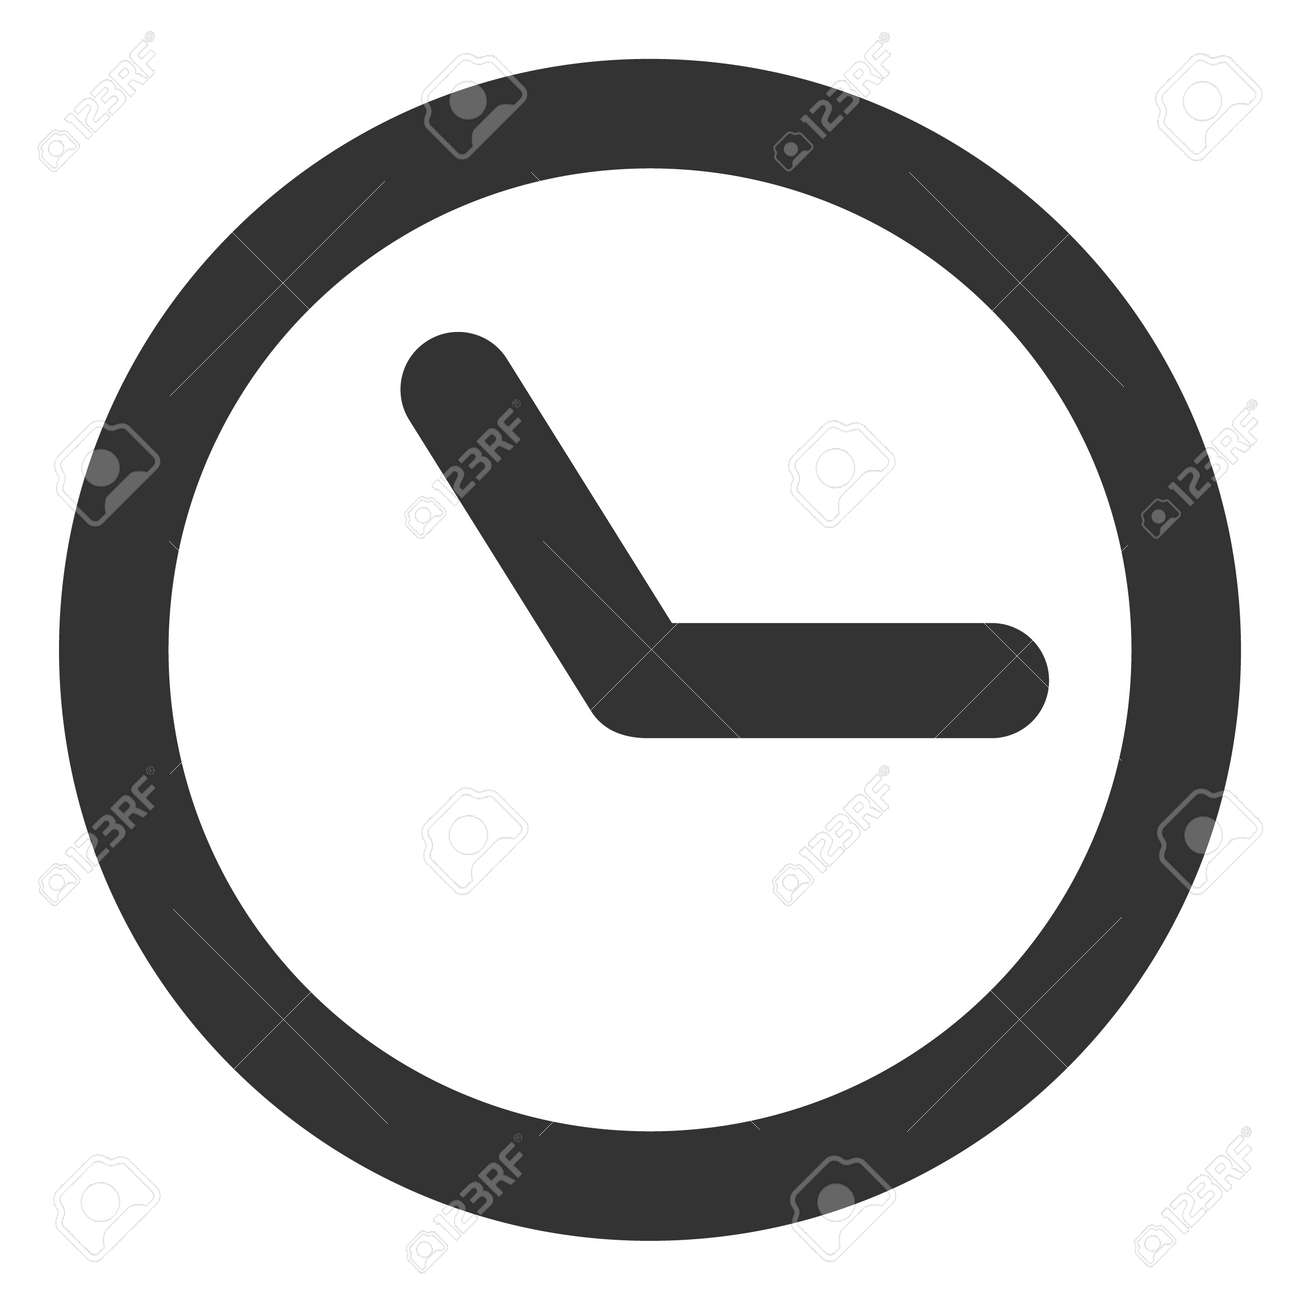 Clock icon on a white background. Isolated clock symbol with flat style. - 158873908